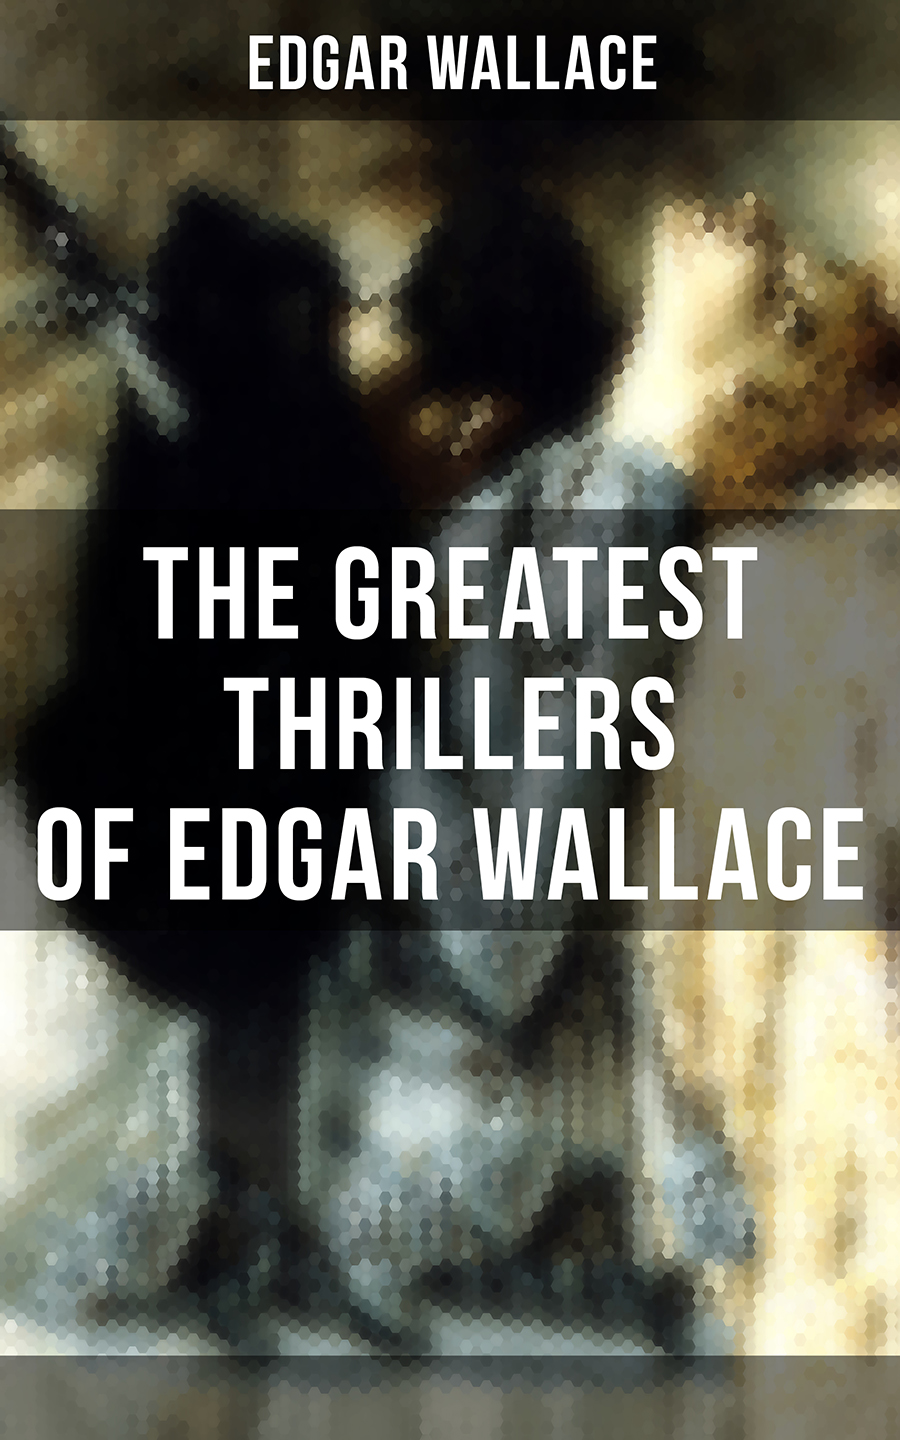 Edgar Wallace The Greatest Thrillers of Edgar Wallace недорого